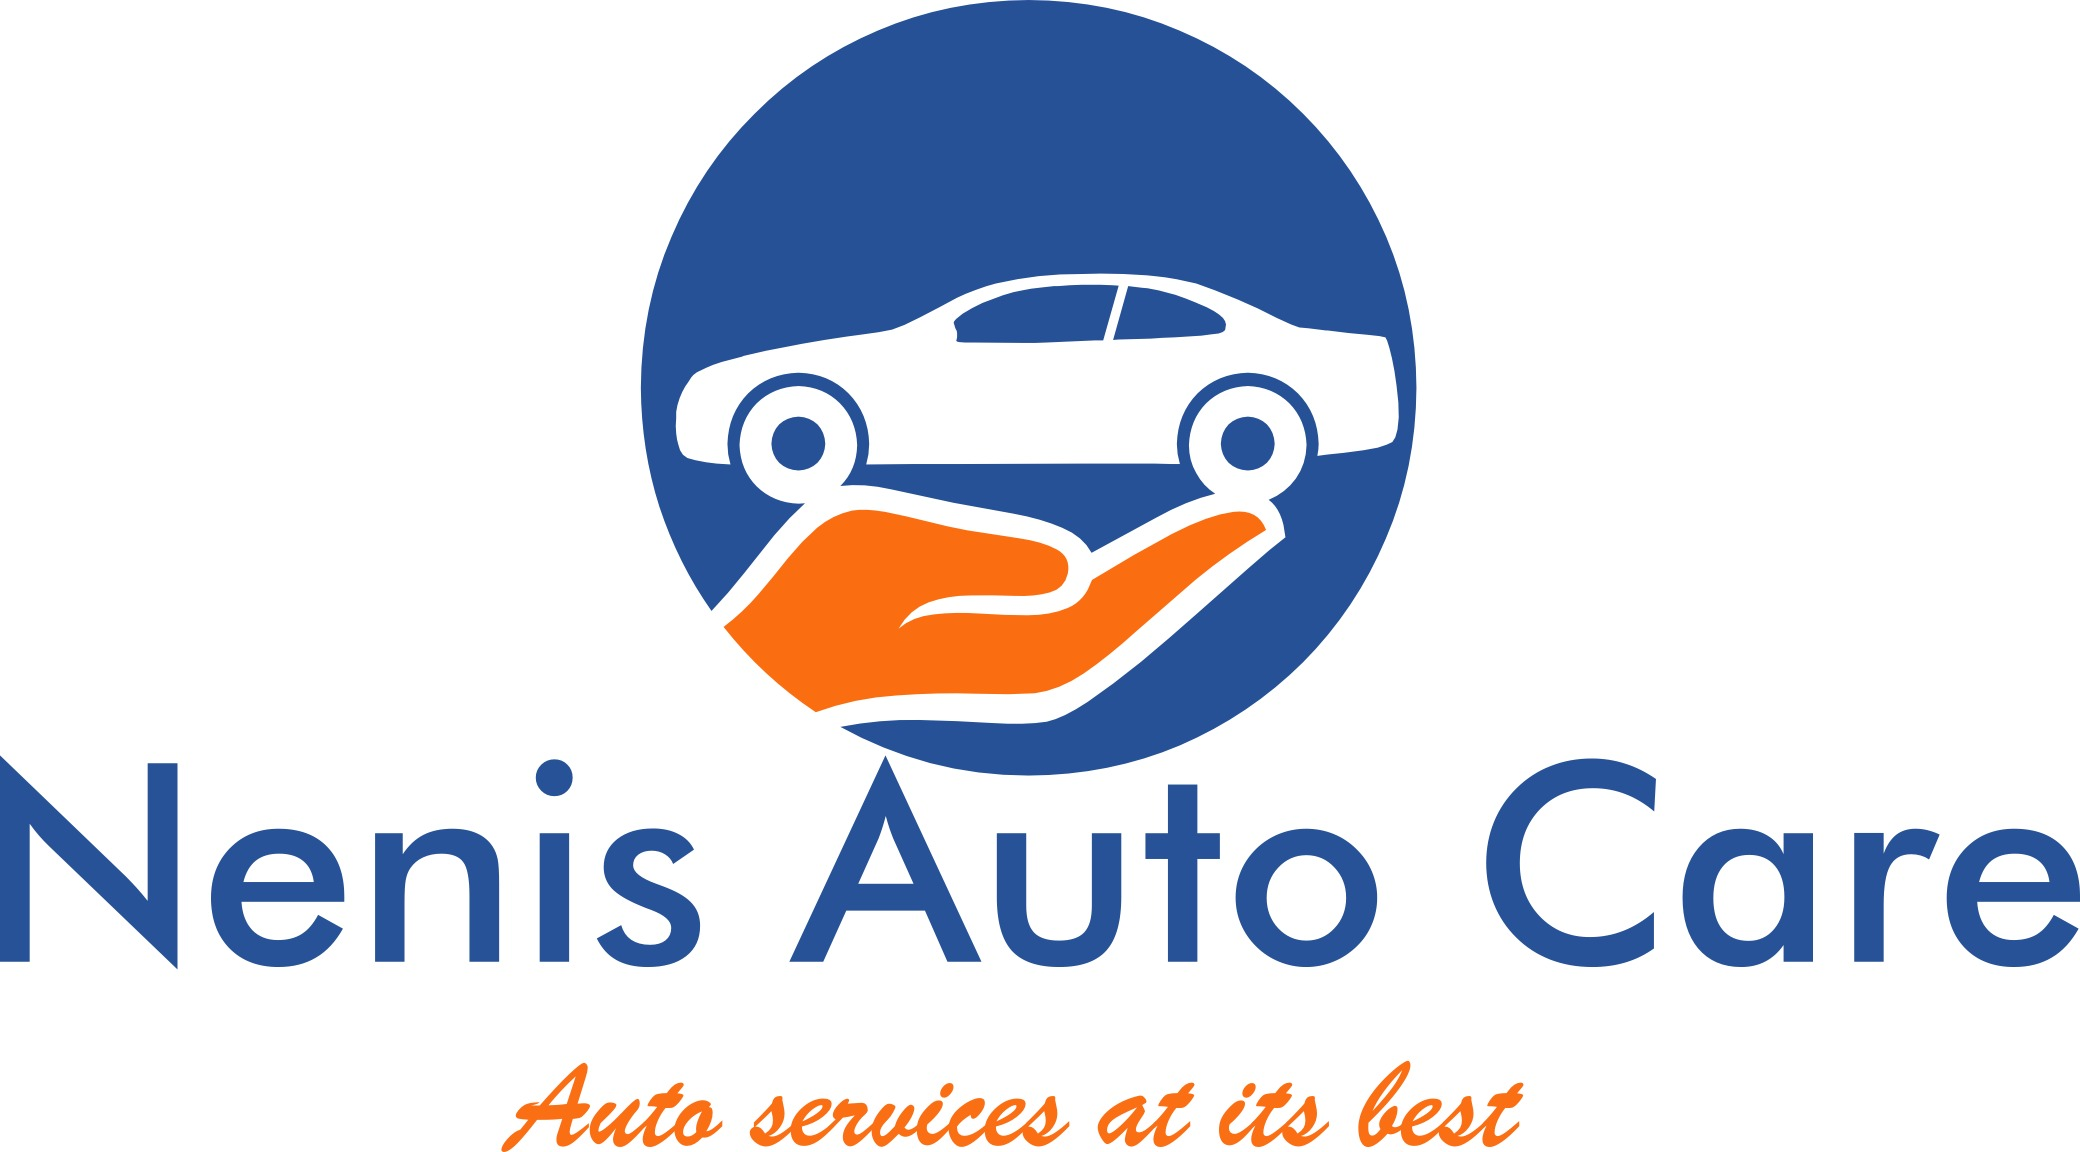 oduwa agboneni bringing professionalism to ia s auto care when i still had a 9 5 job i started doing online ticketing and reservation for my family members and friends as a